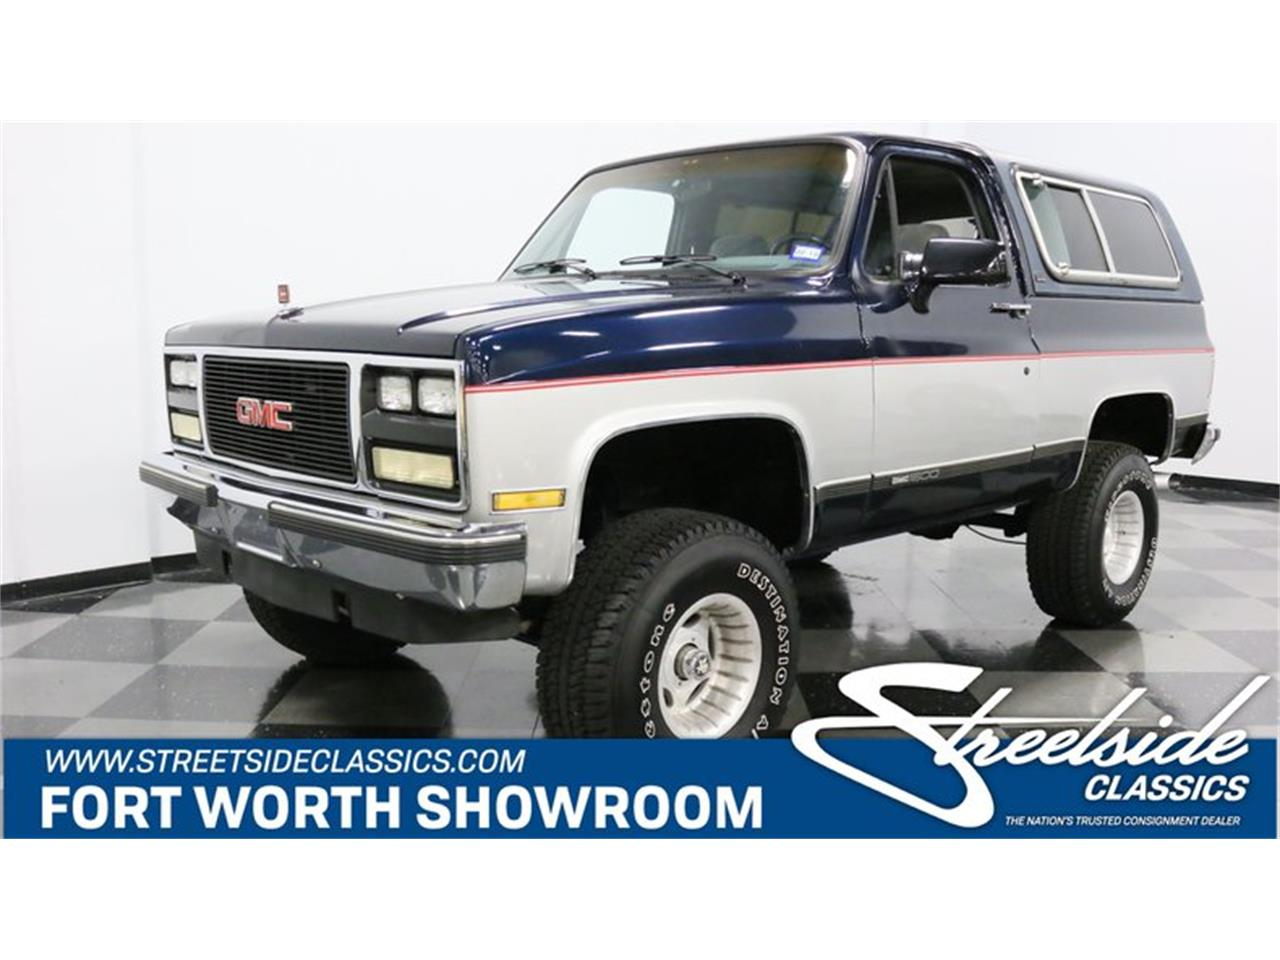 1990 Gmc Jimmy For Sale Classiccars Com Cc 1163000